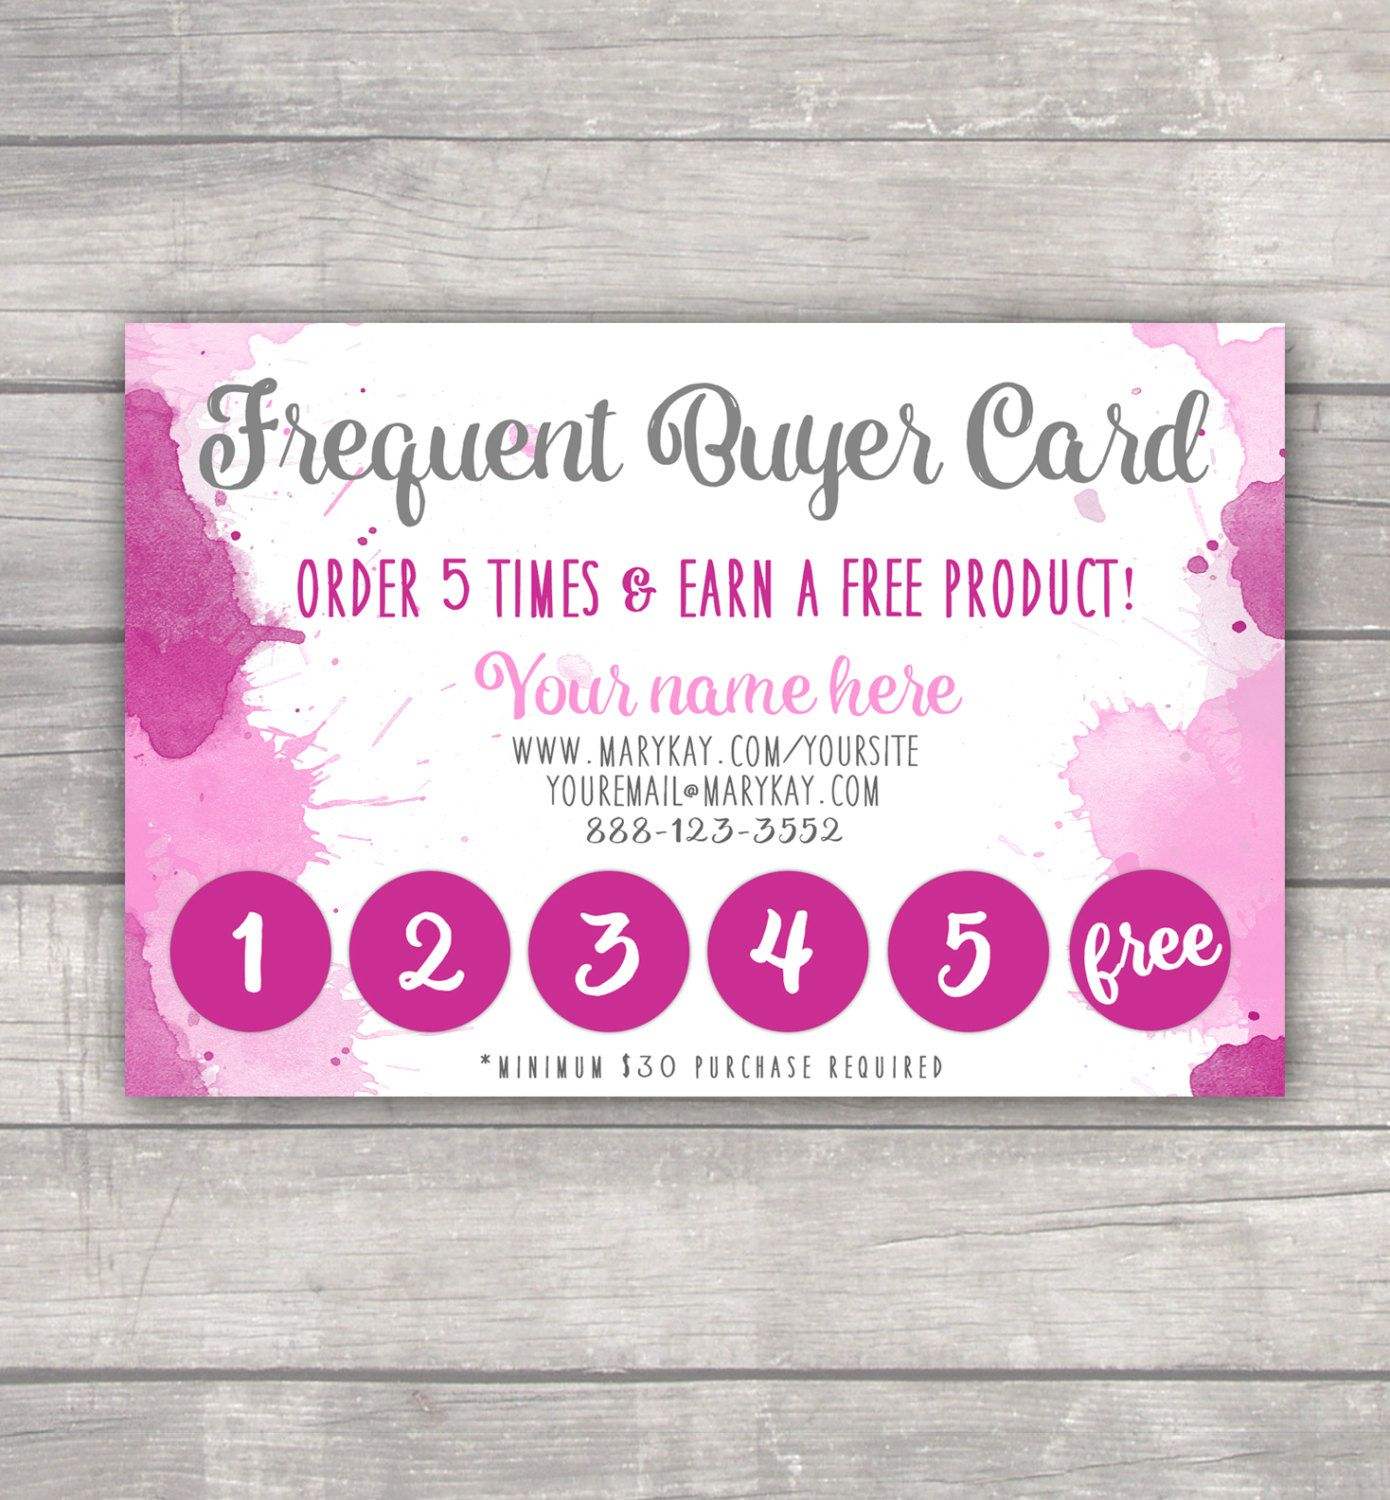 Mary kay hostess offer google search mary kay business frequent buyer punch card marykay lularoe by specsdesignco reheart Image collections